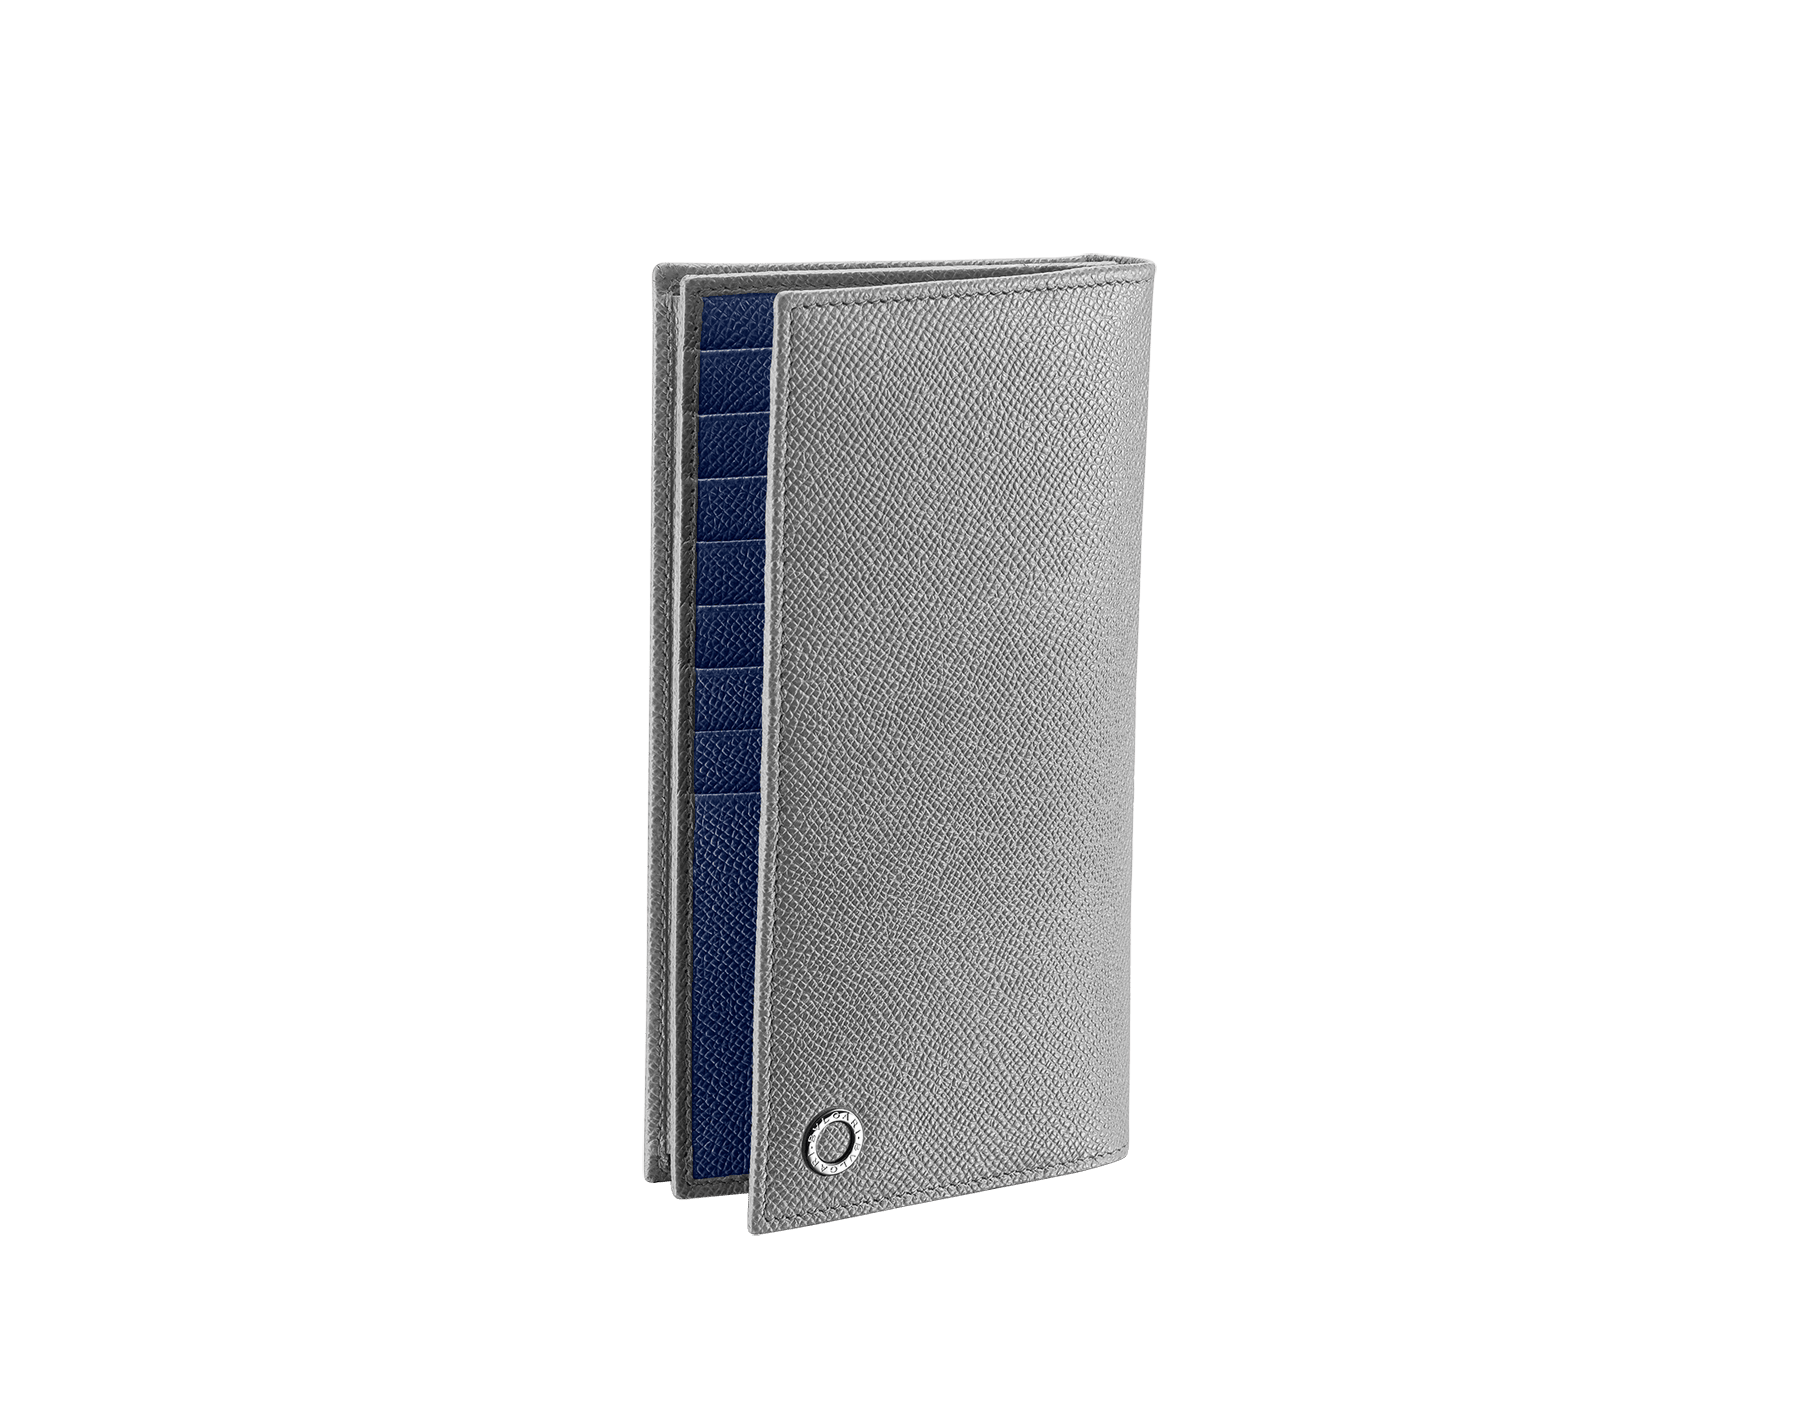 """""""BVLGARI BVLGARI"""" large wallet in Pluto Stone gray and Denim Sapphire blue grained calf leather. Iconic logo-bearing embellishment in palladium-plated brass. BBM-WLT-Y-ZP-16C-gcl image 1"""